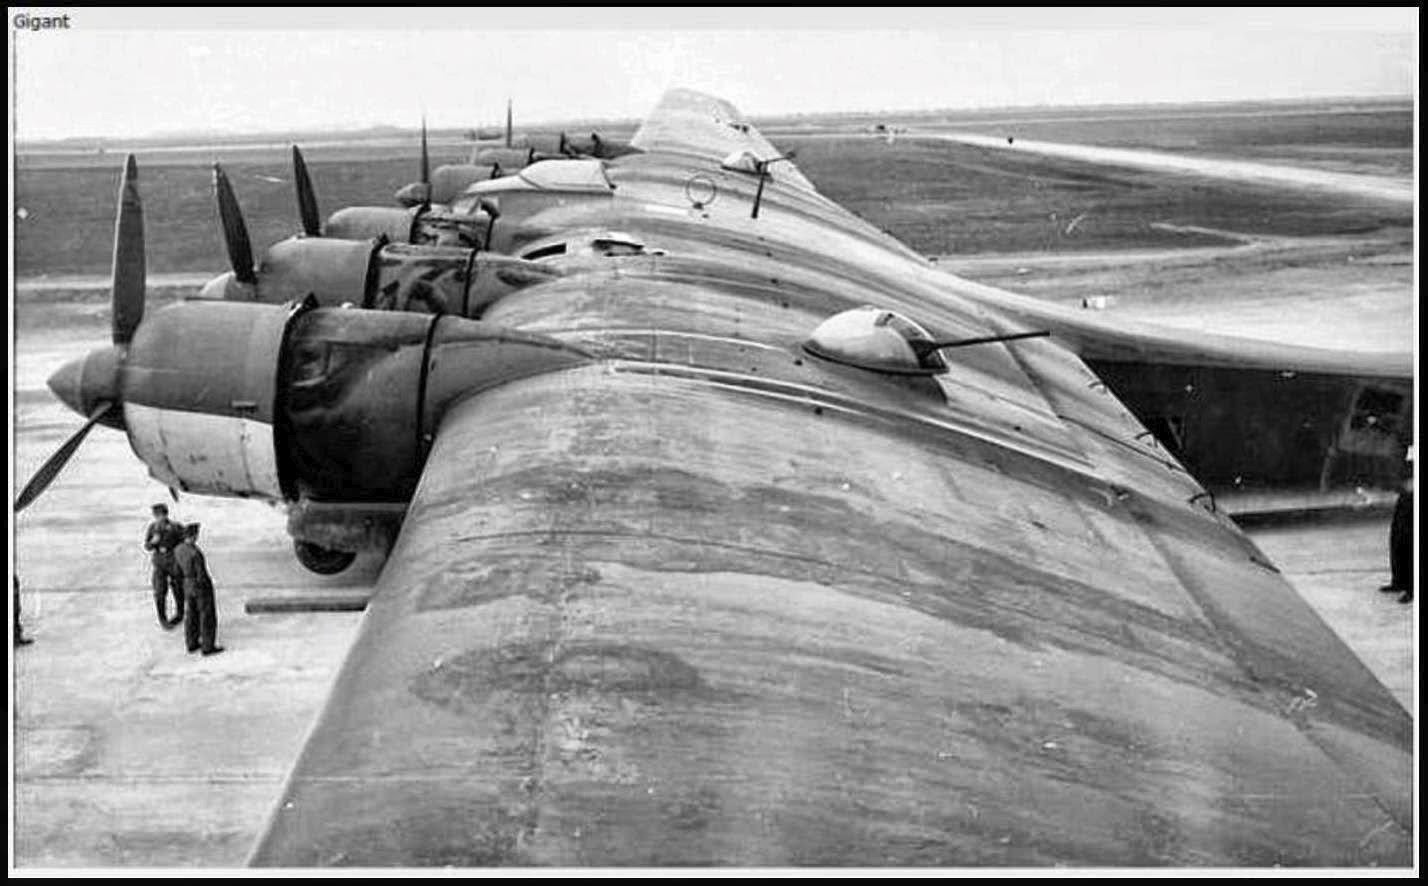 Bayou Renaissance Man: Pictures of the German Air Force in